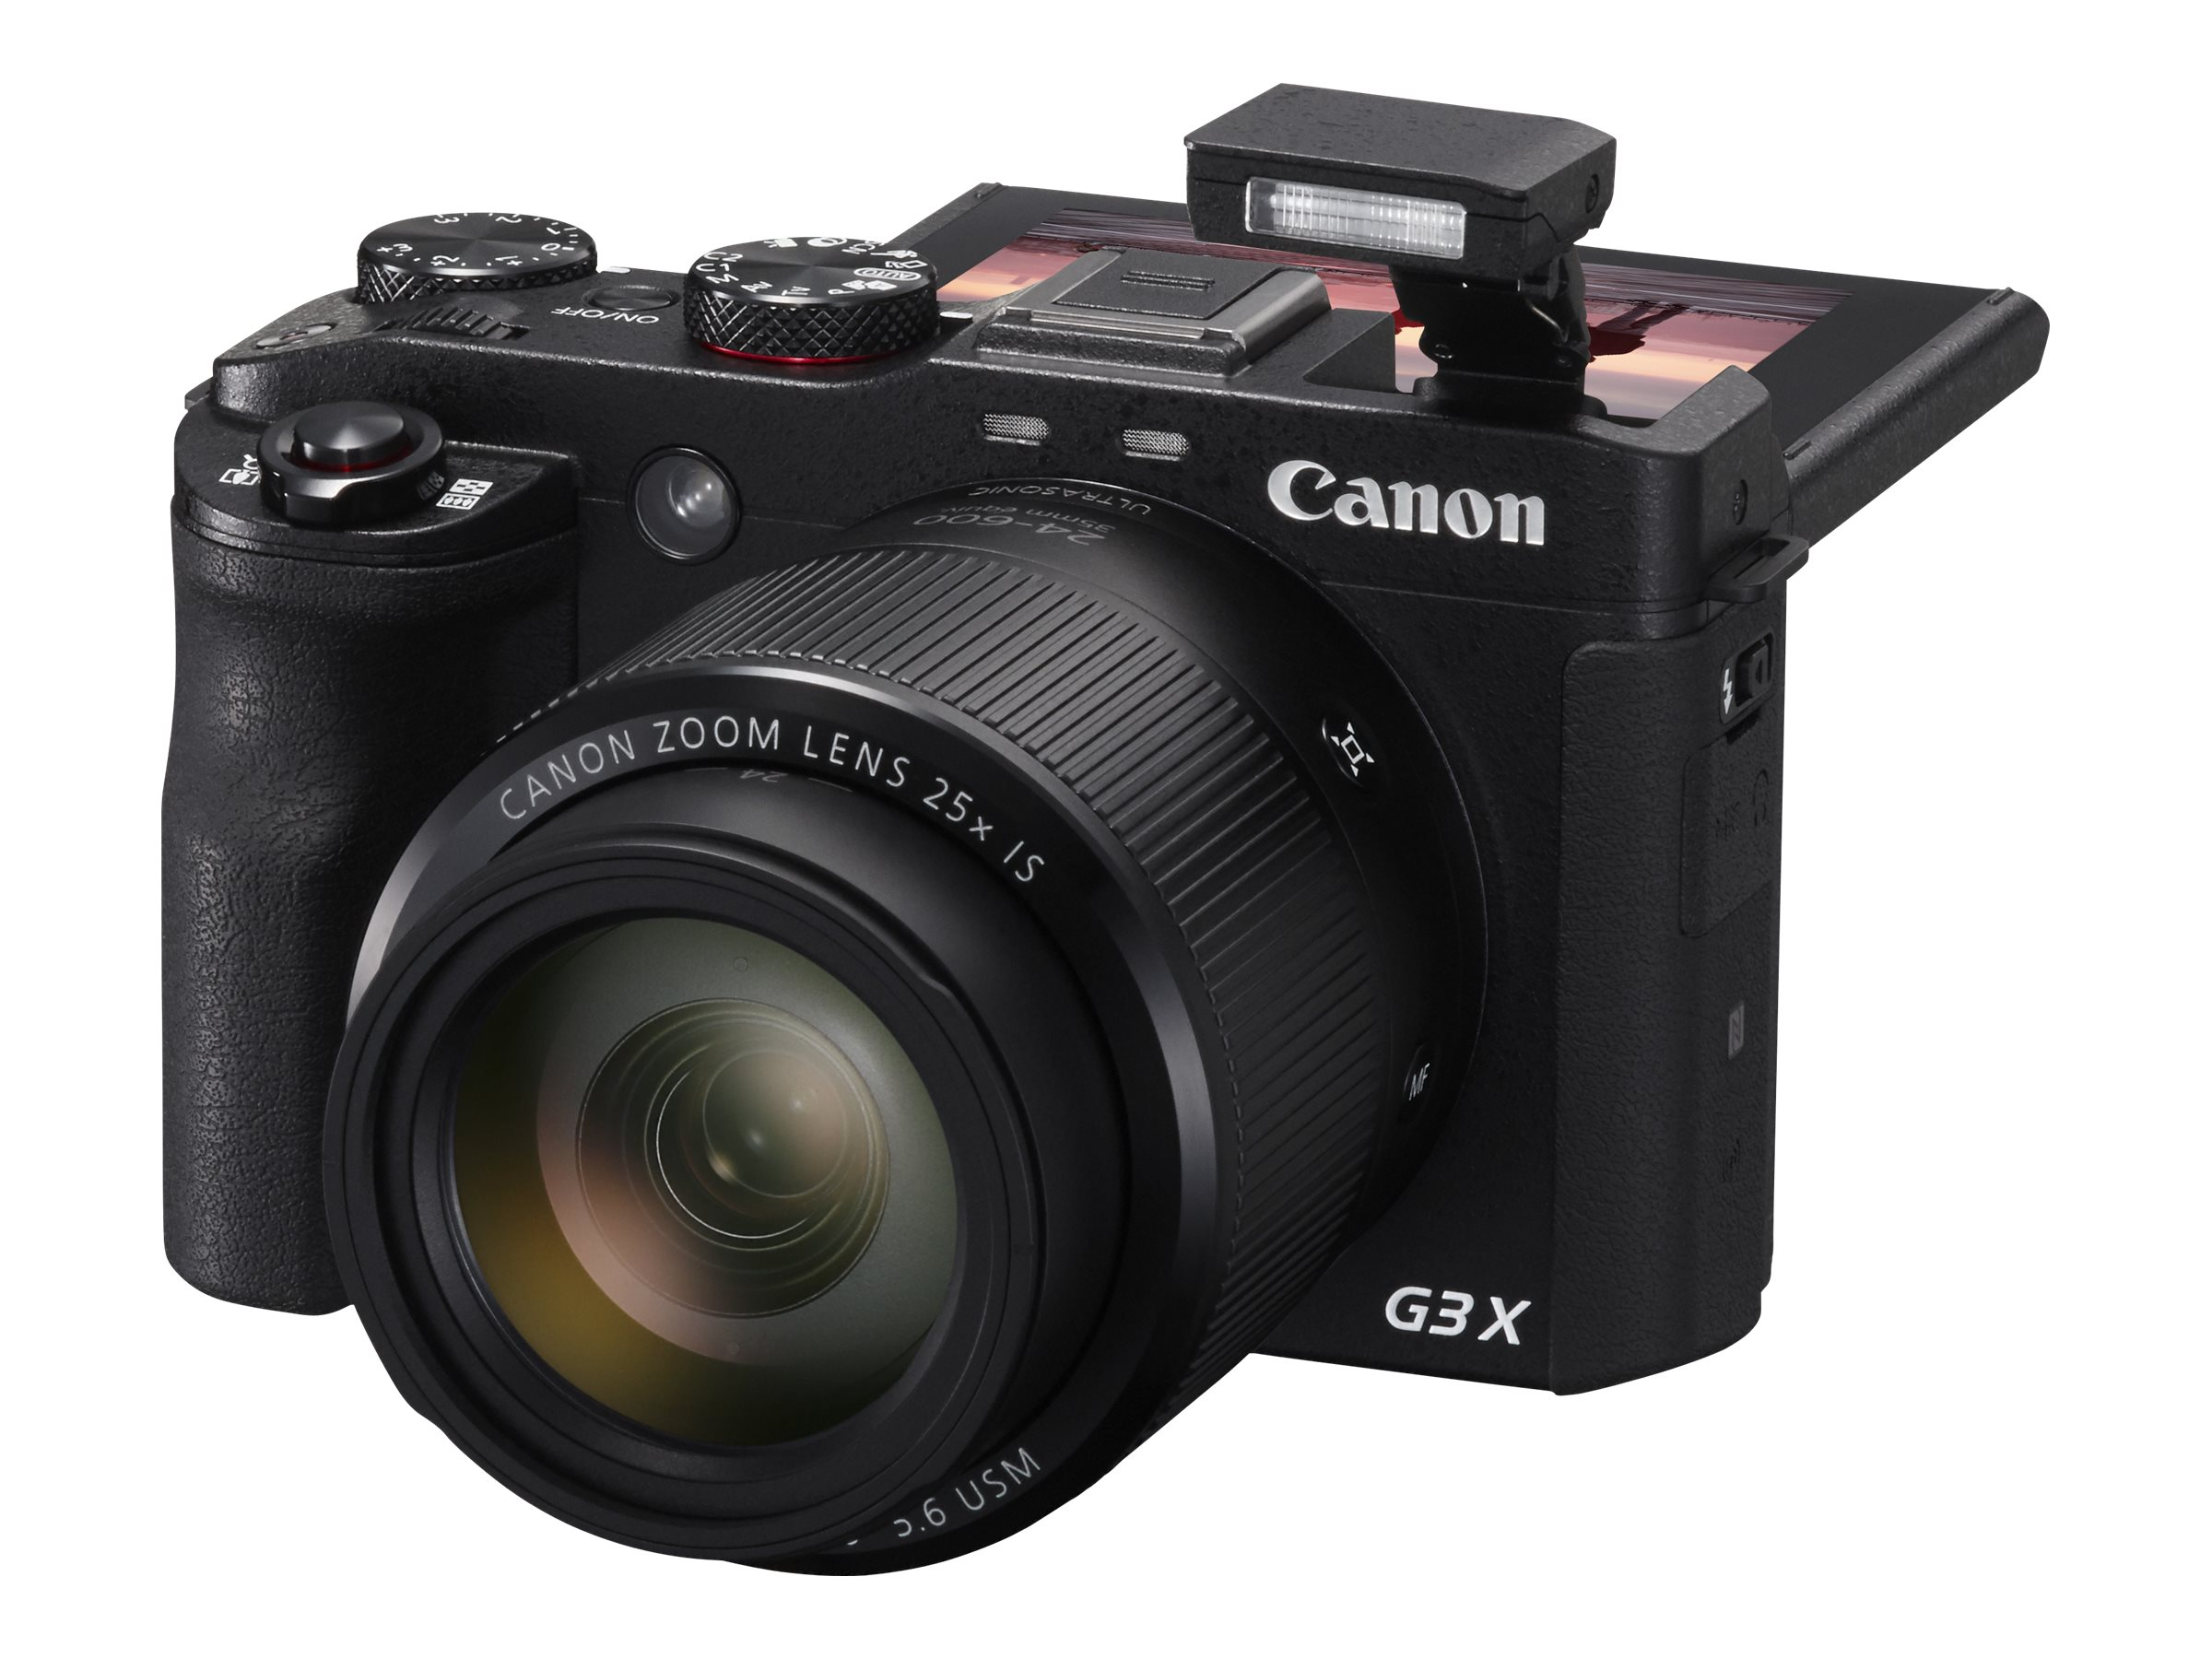 Canon PowerShot G3 X Camera, 20.2MP, 25x Zoom, Black